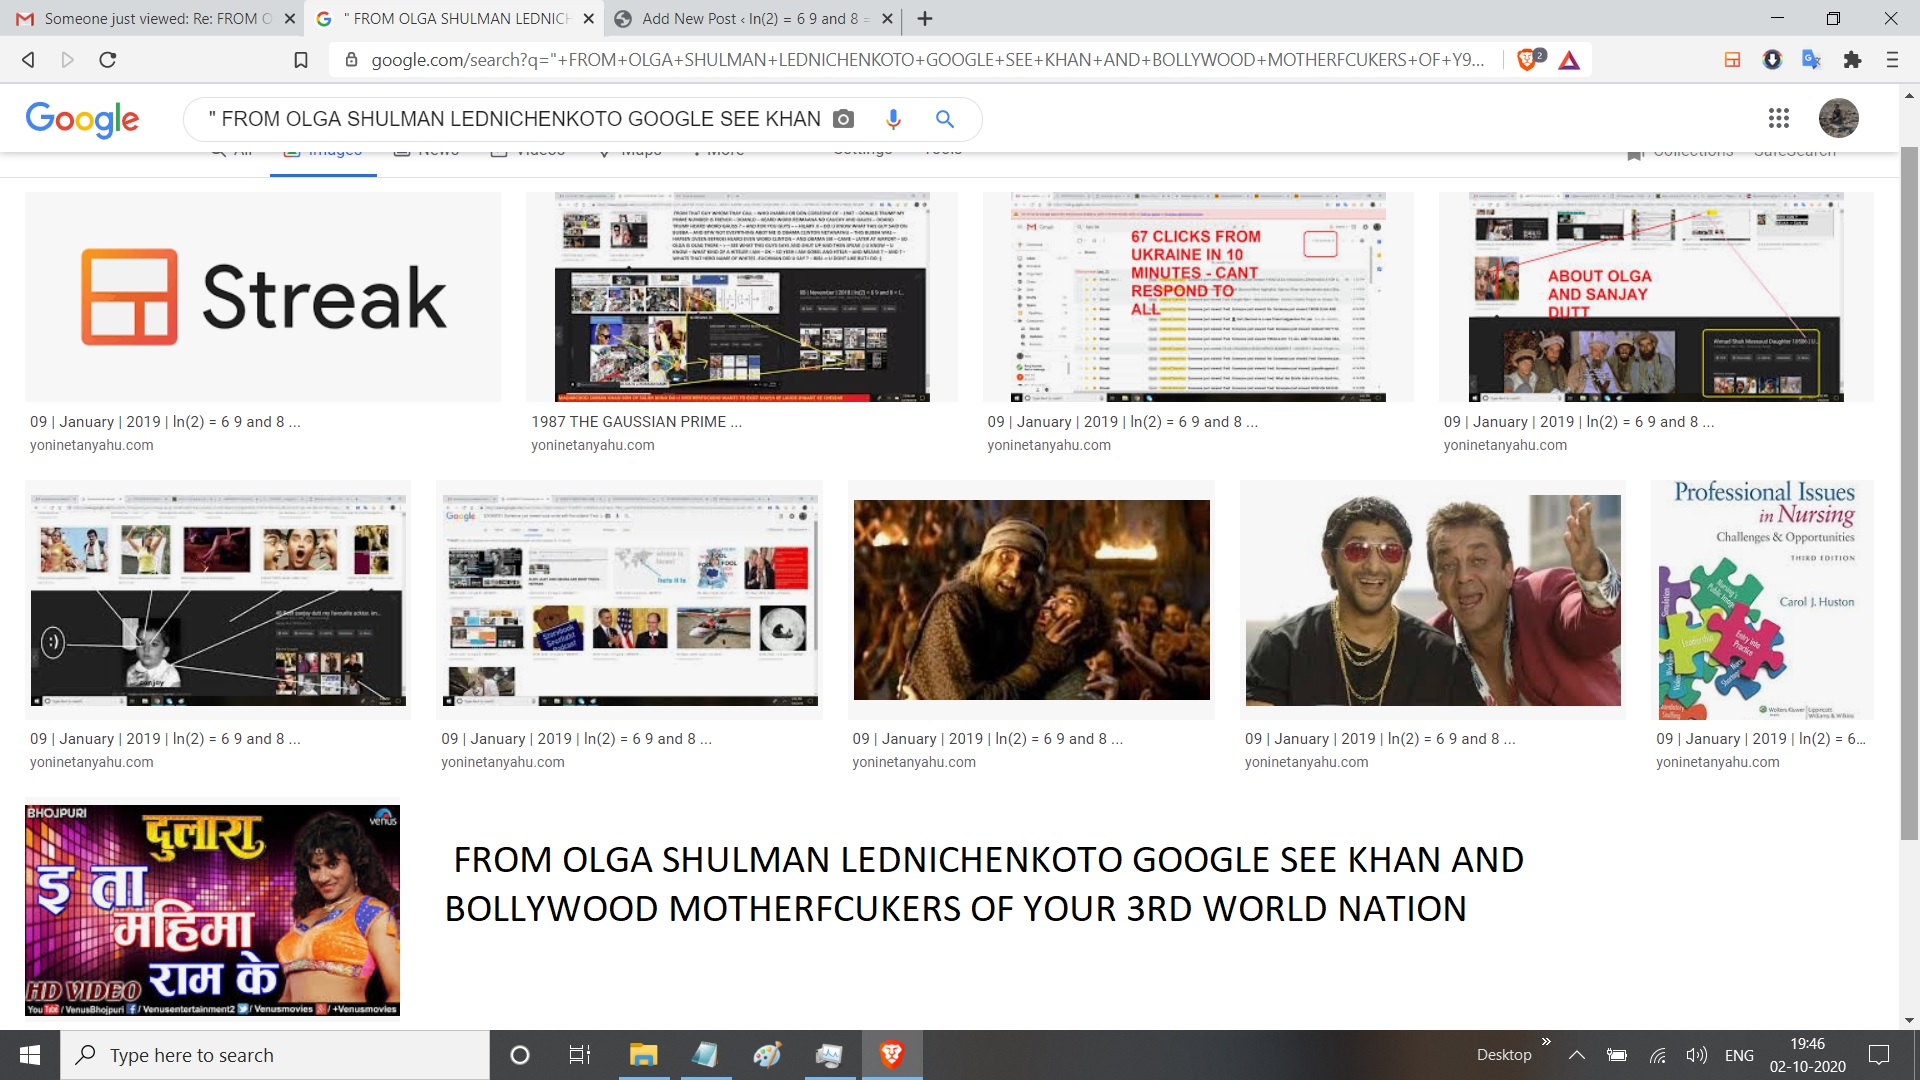 FROM OLGA SHULMAN LEDNICHENKOTO GOOGLE SEE KHAN AND BOLLYWOOD MOTHERFCUKERS OF YOUR 3RD WORLD NATION